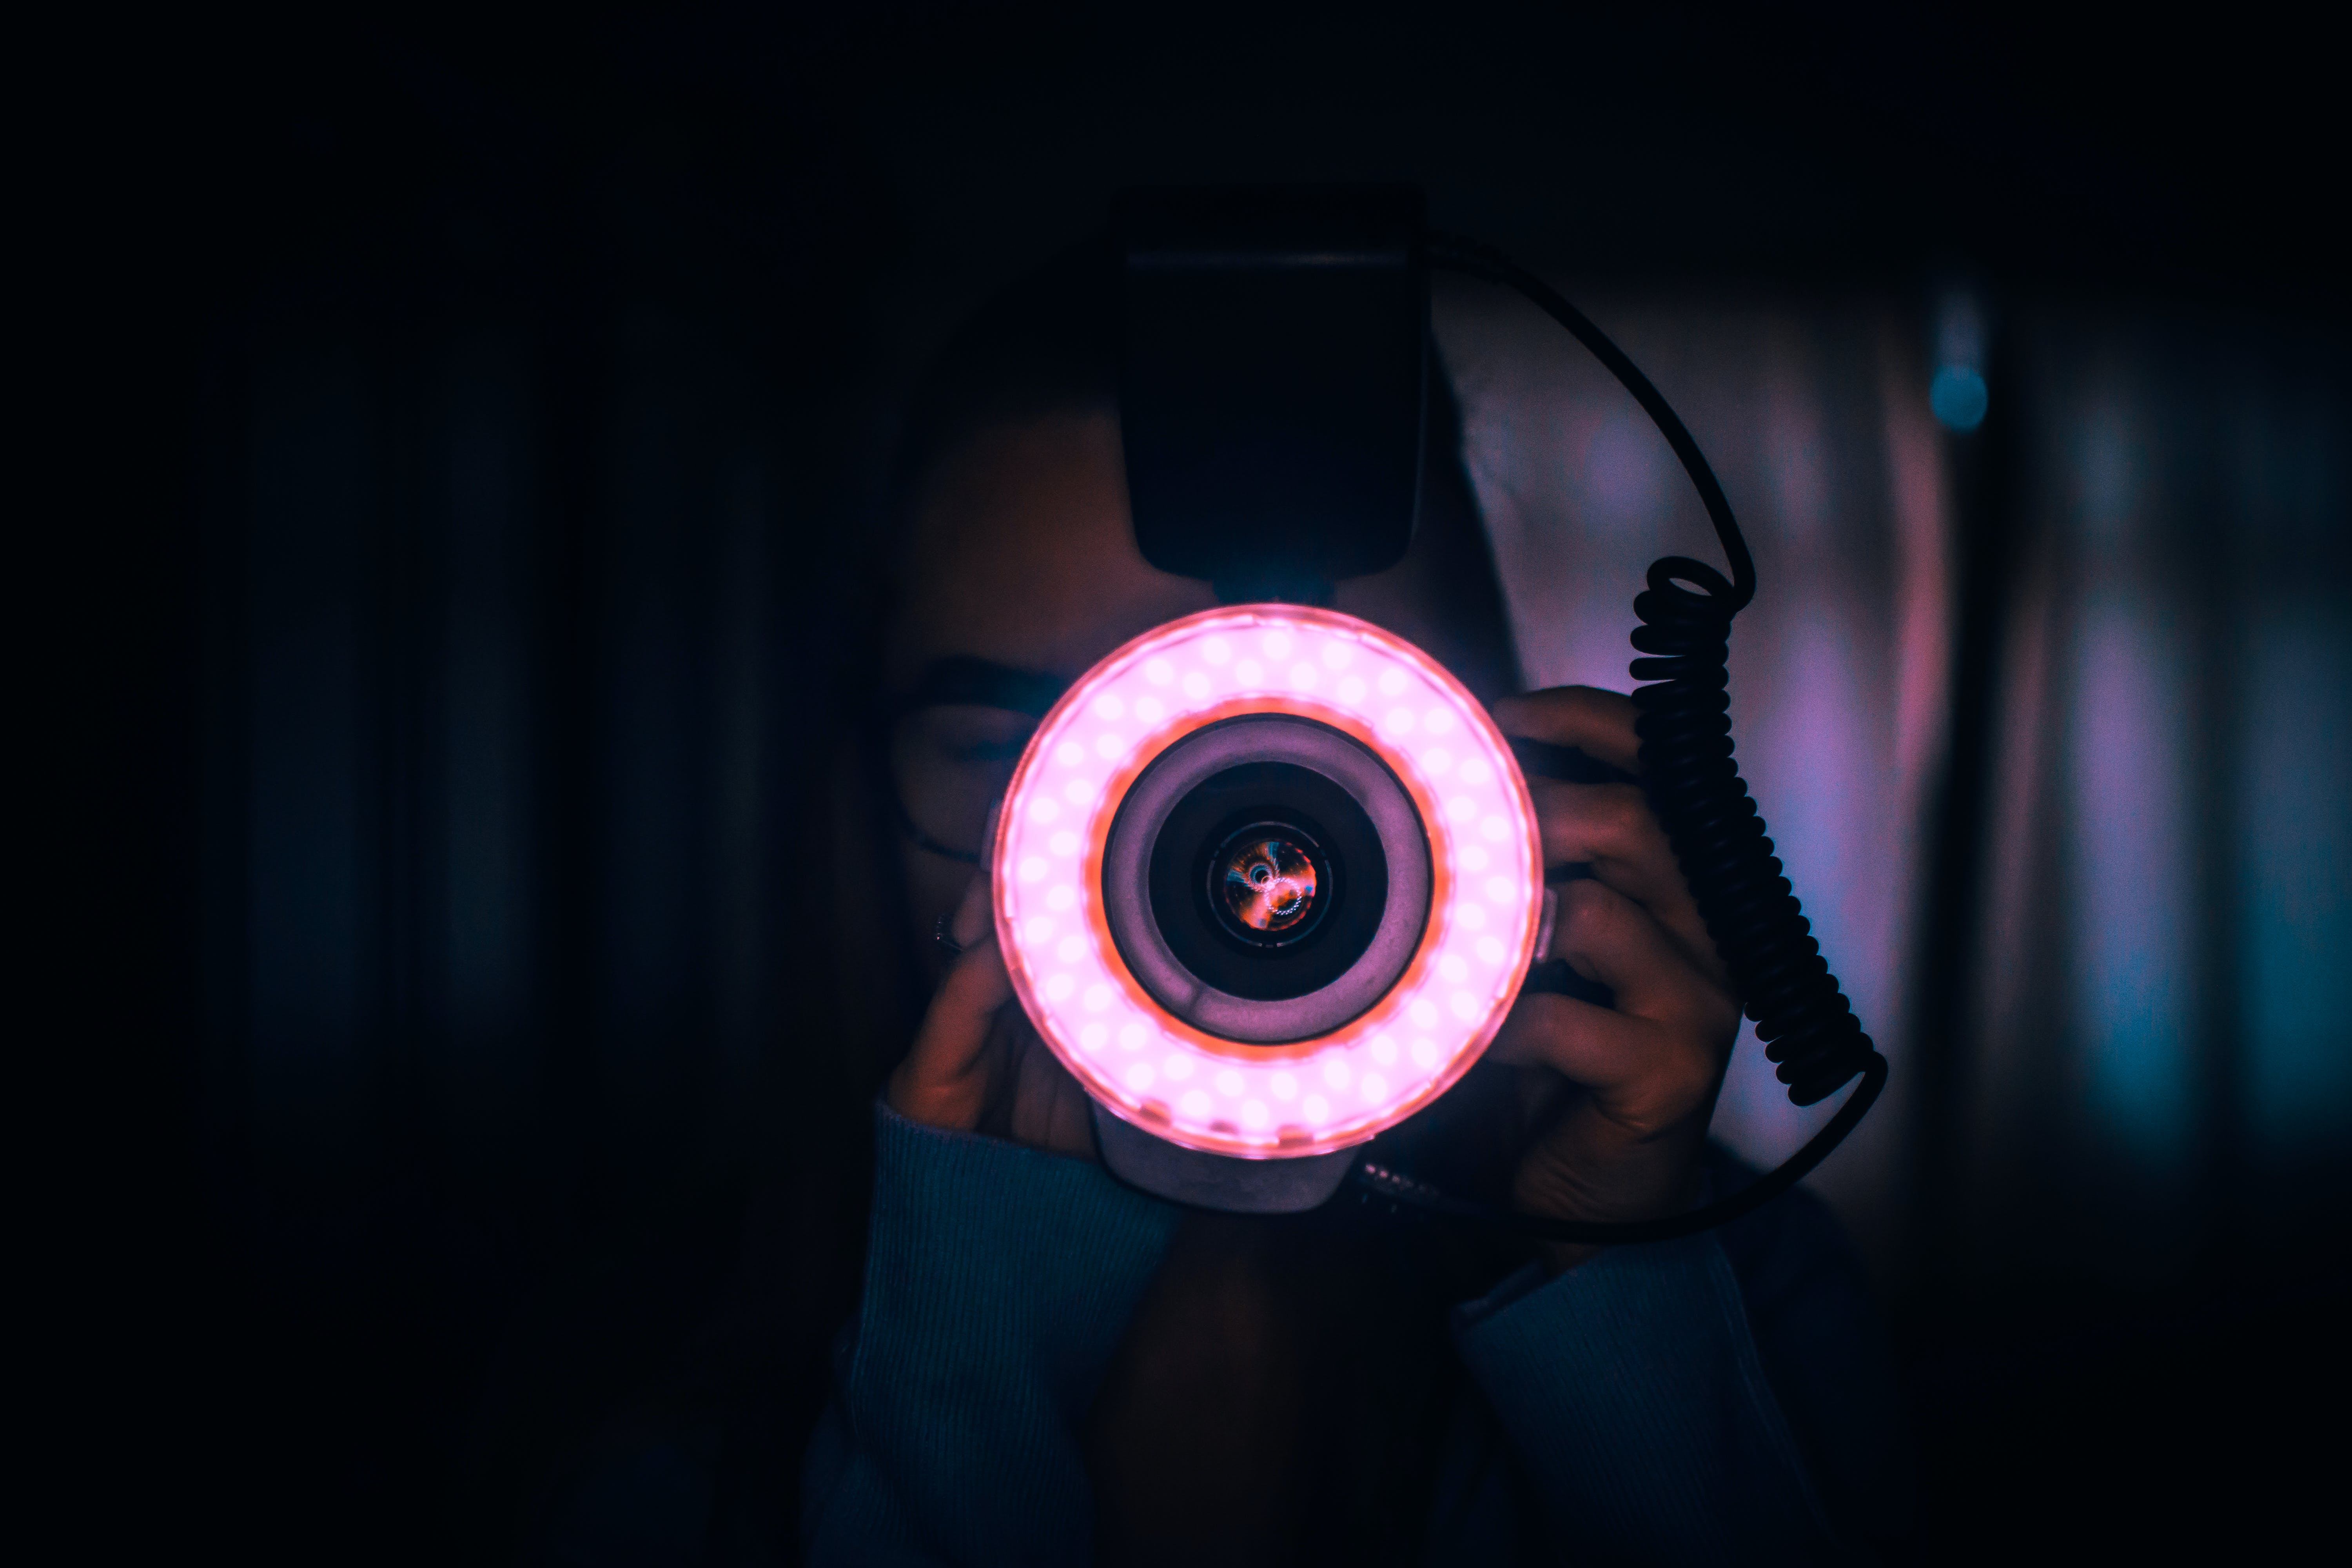 Person Holding Camera With Red Lights on Lens